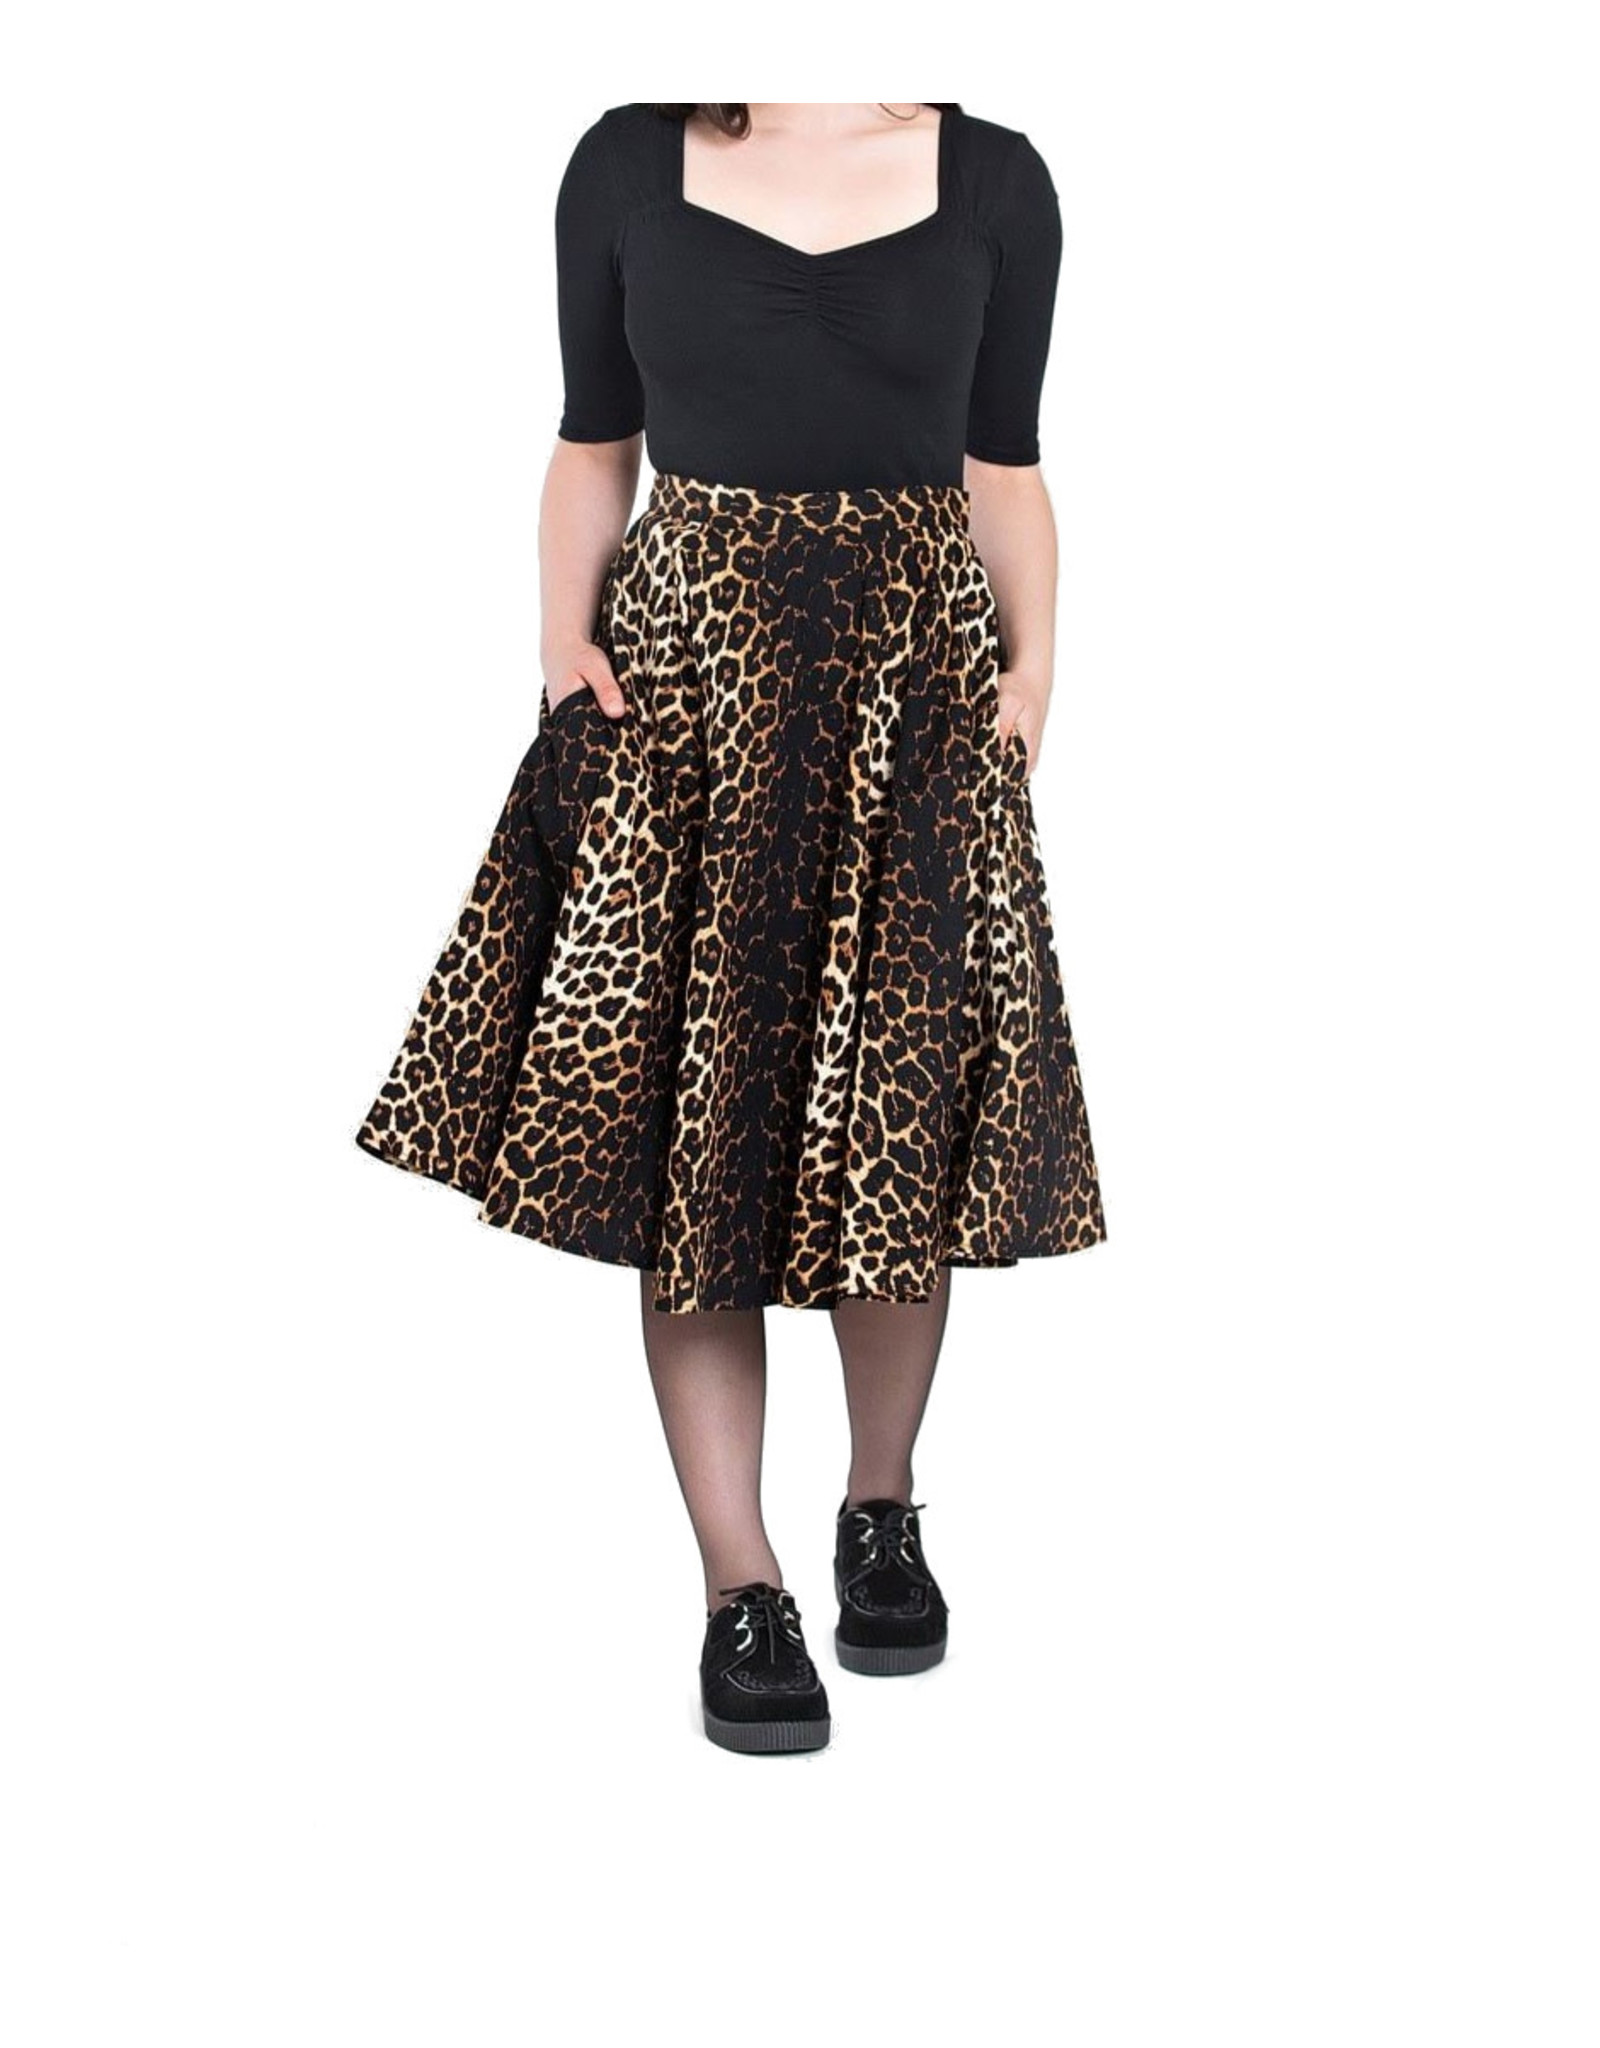 HELL BUNNY - Panthera 50's Skirt